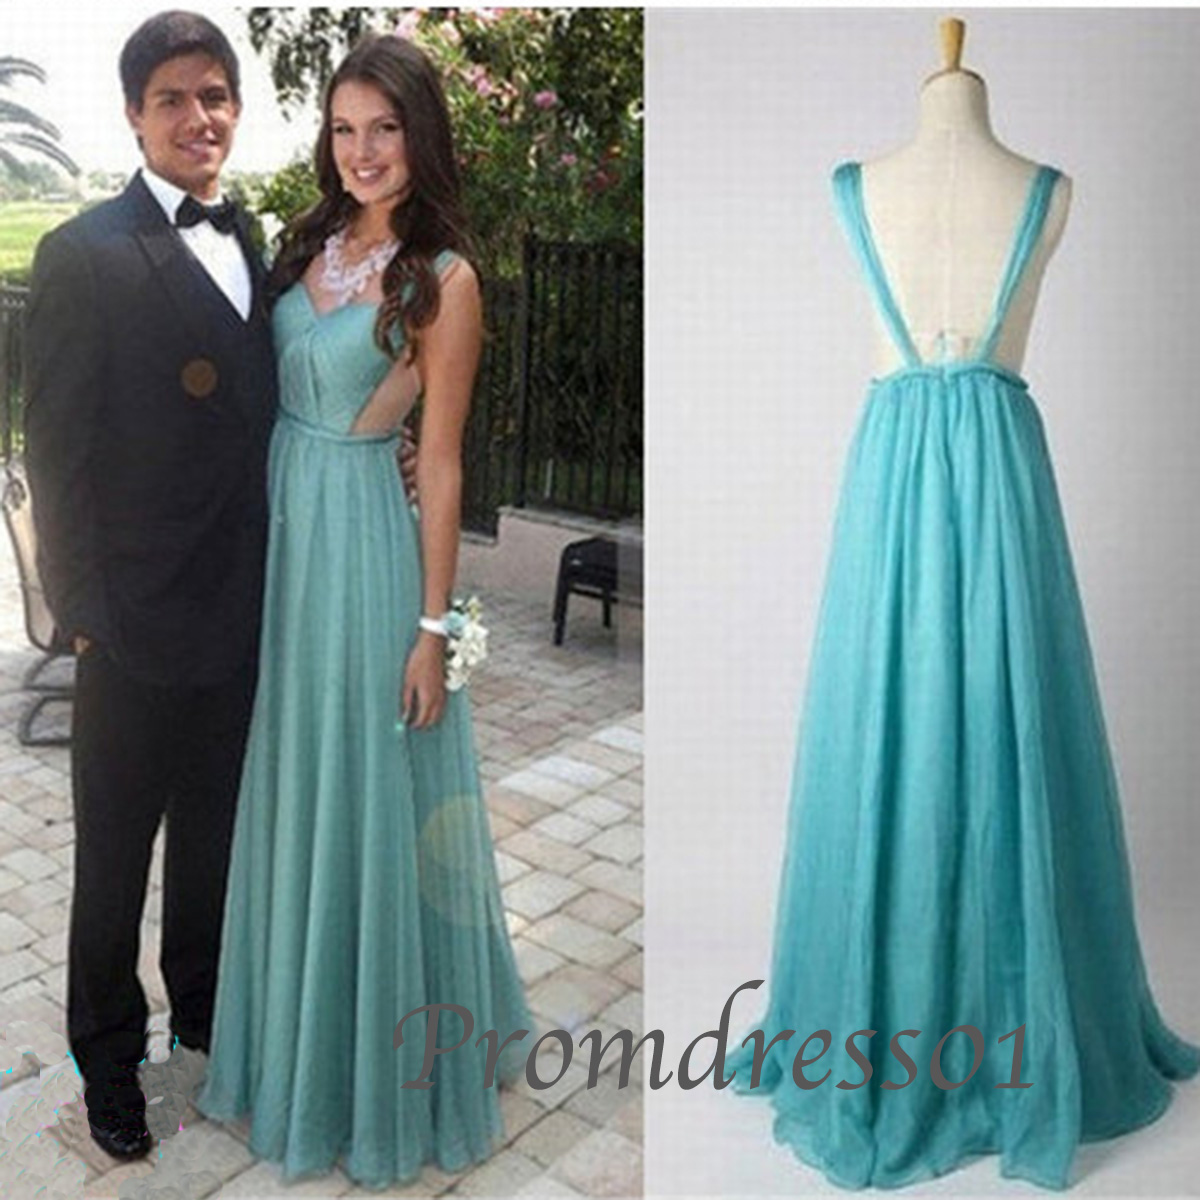 Turquoise Backless Prom Dress_Prom Dresses_dressesss